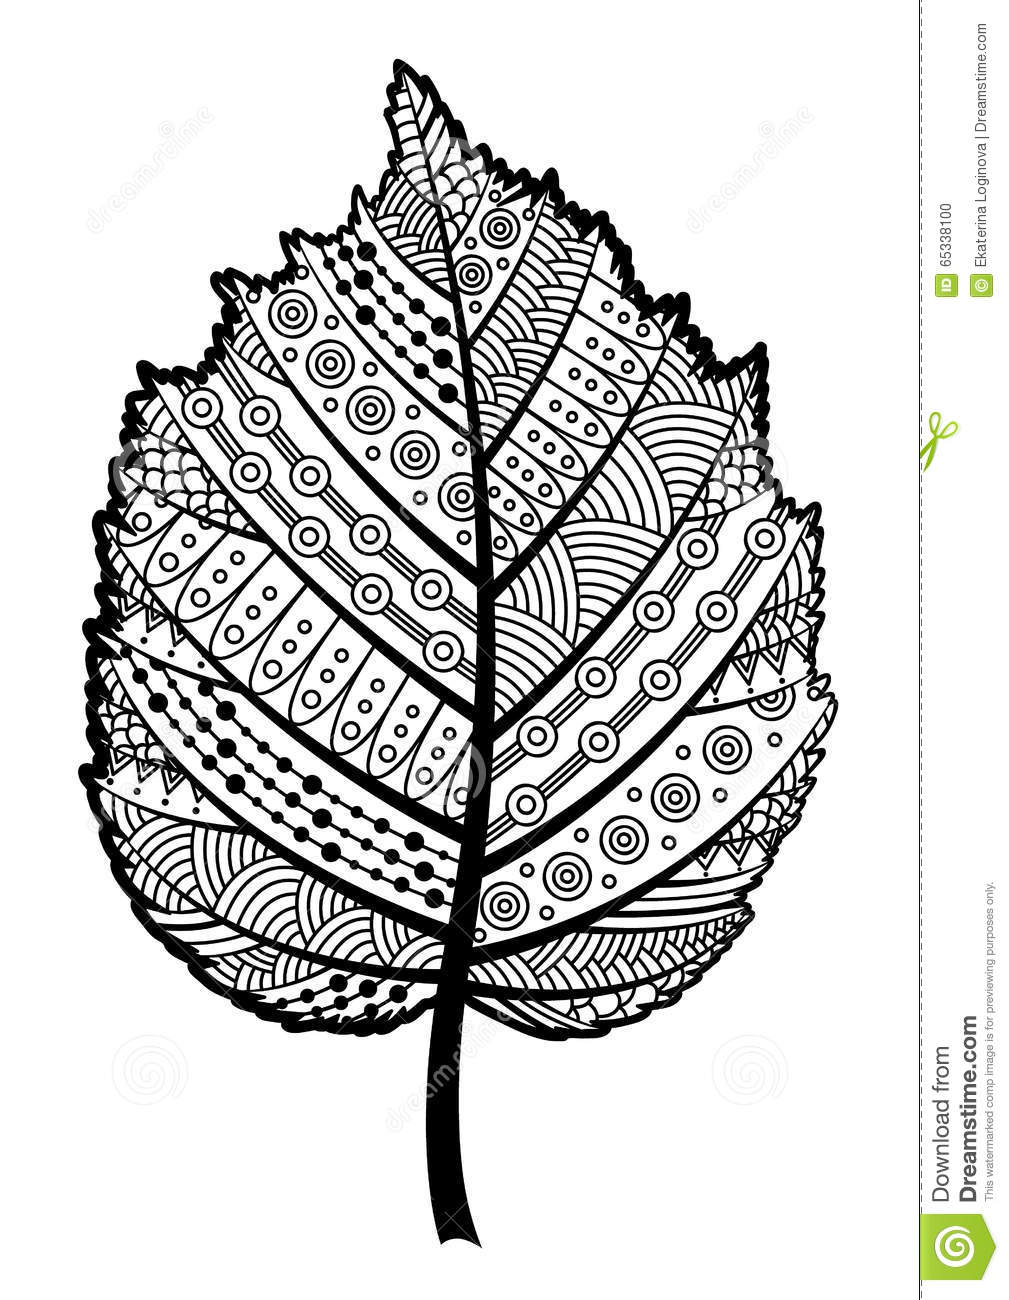 Vine Stencils Printable Ivy Leaf Vine Clip Art 246777 also How To Draw Ash Ketchum From Pokemon further Mandala Crecimiento Exponencial together with Free Coloring Pages Pac Man furthermore Super Mario Odyssey Coloring Pages Cute Cappy. on coloring pages for adults easy